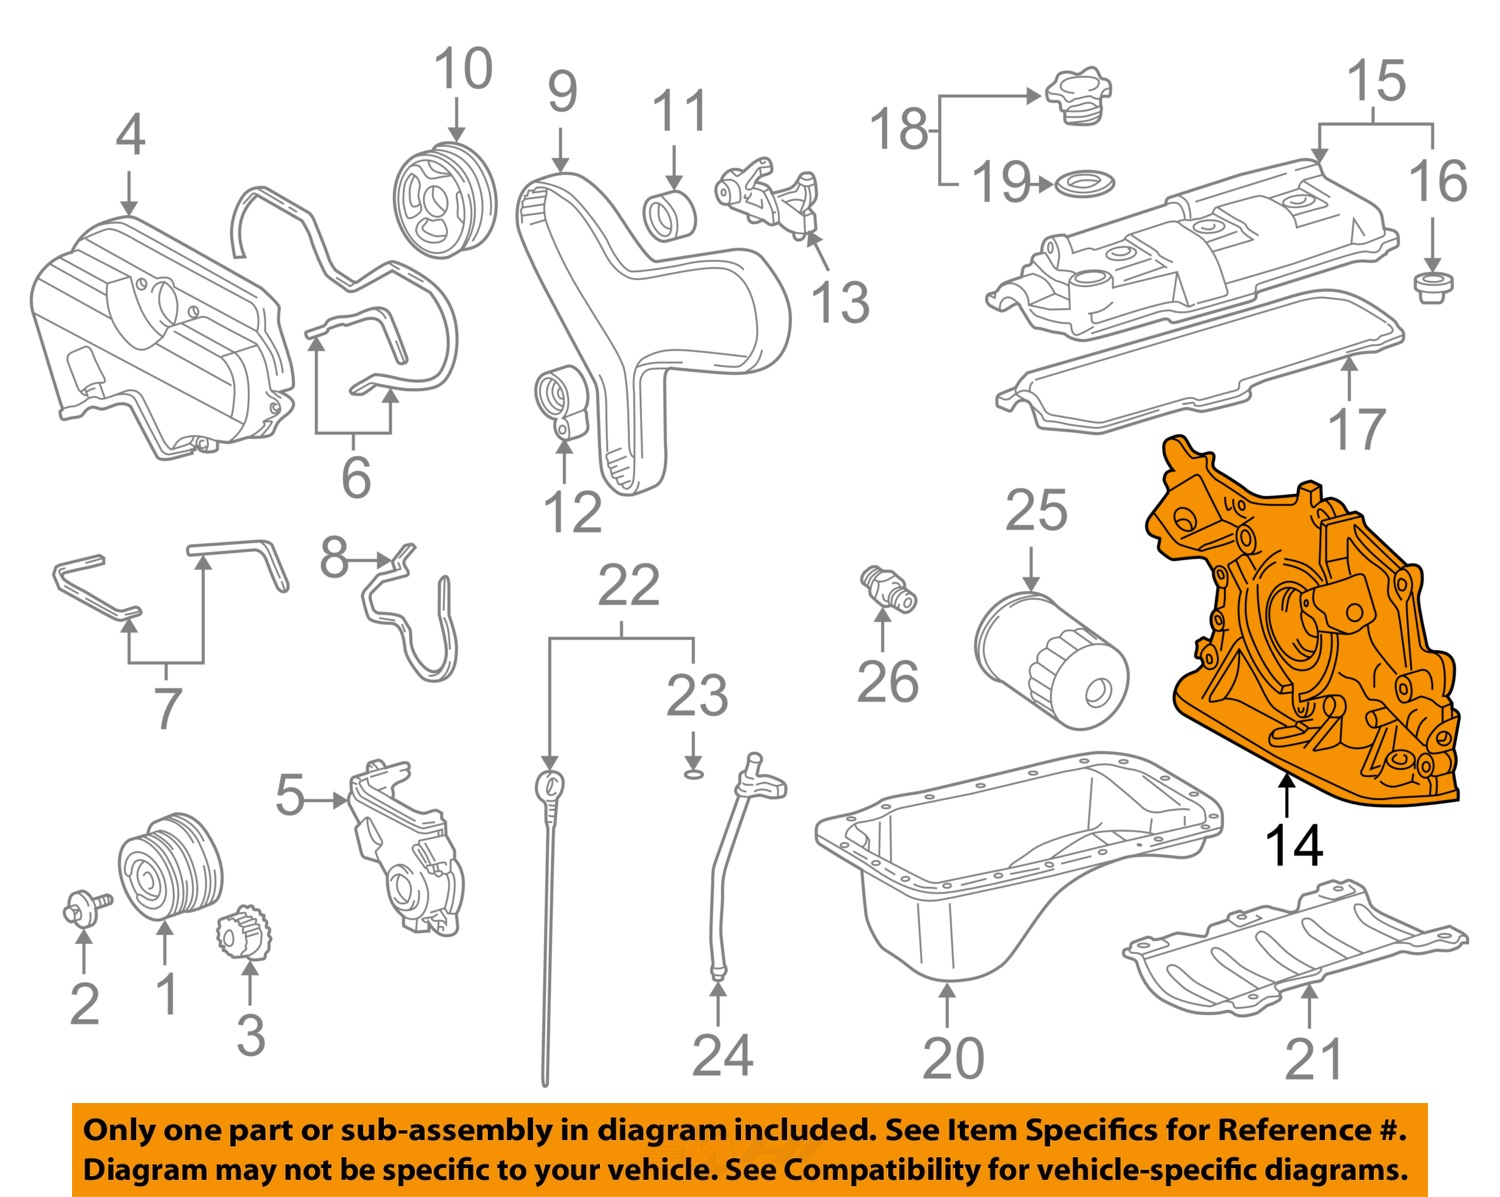 toyota oem 00 02 tundra 3 4l v6 engine oil pump 1510162050 image is loading toyota oem 00 02 tundra 3 4l v6